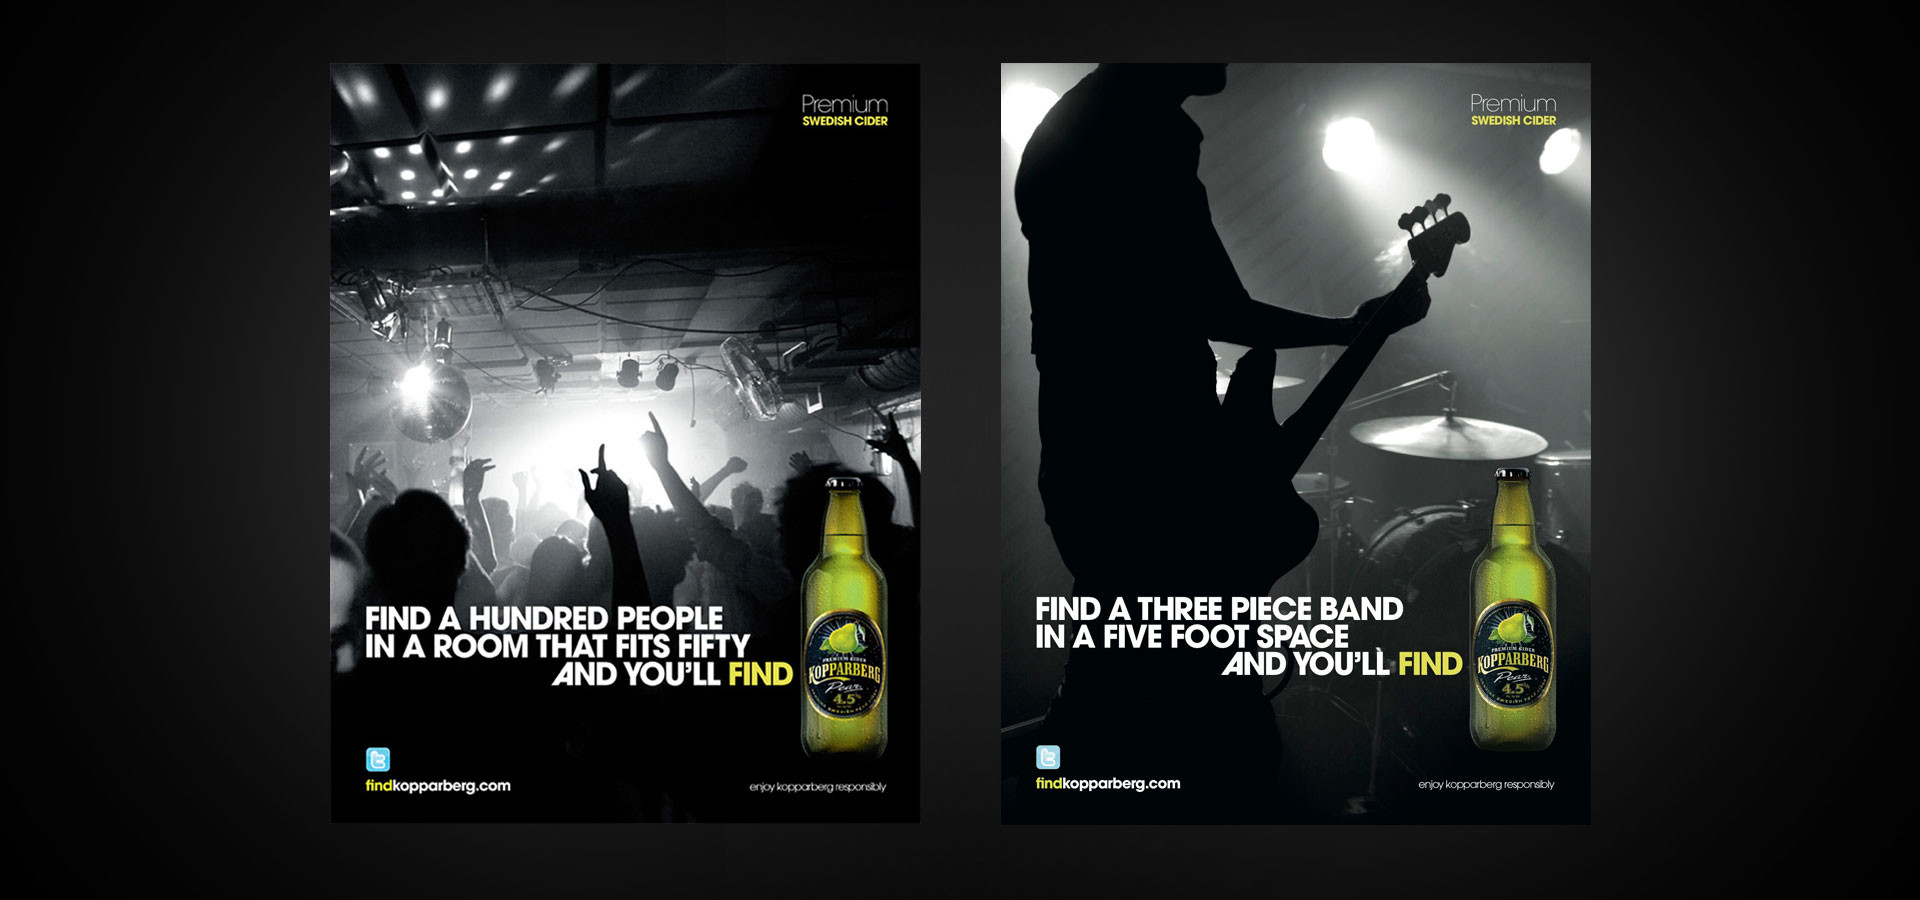 Kopparberg-FIND_Case-Study-Image-1_1920x900px